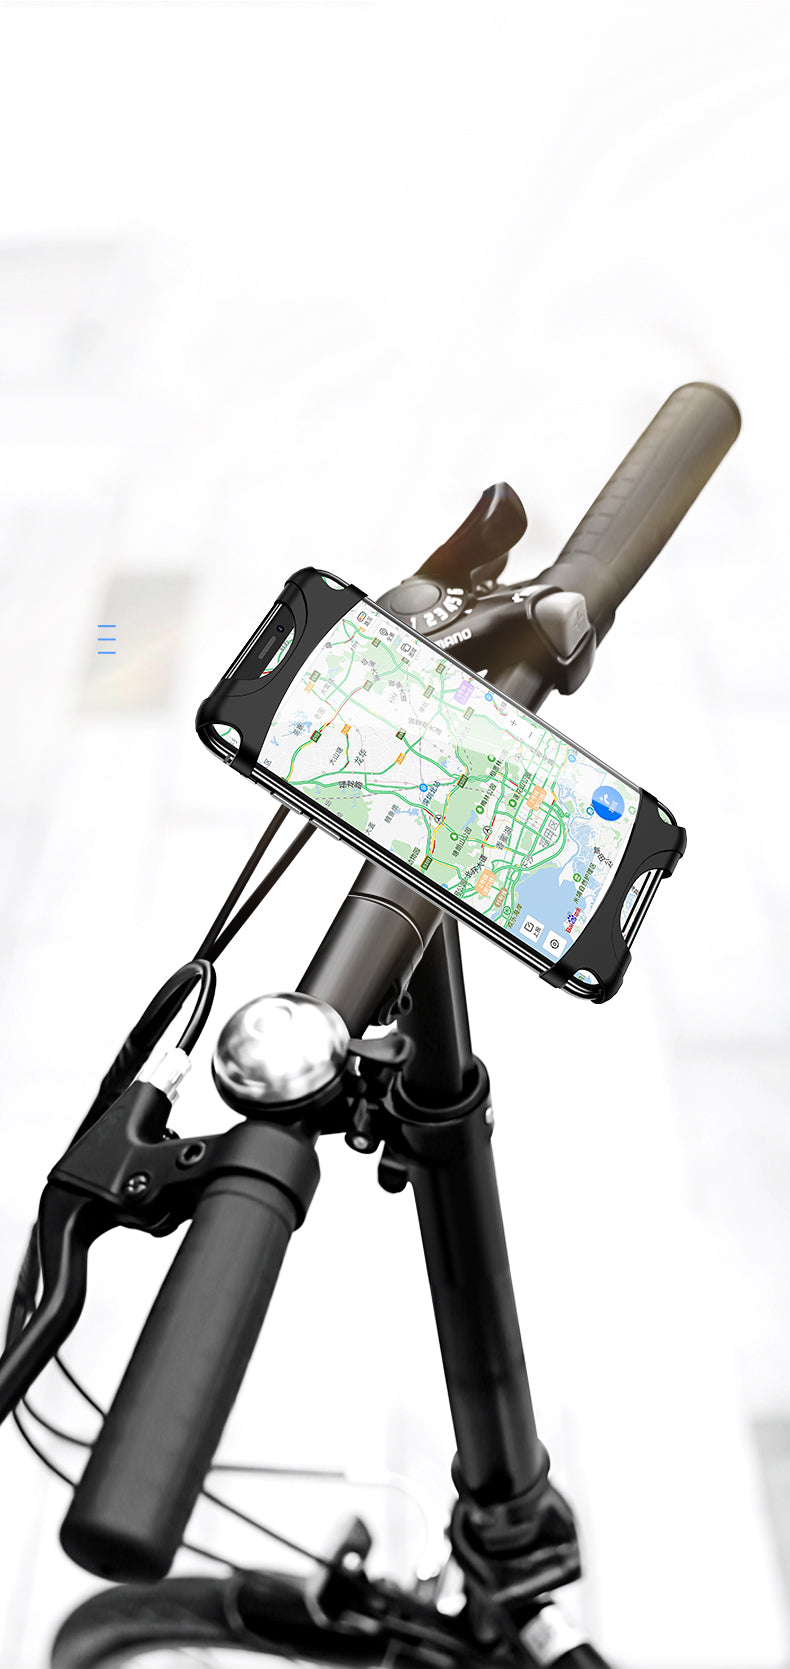 USAMS US-ZJ053 Bicycle Silicone Support Stand Mobile Phone Bracket